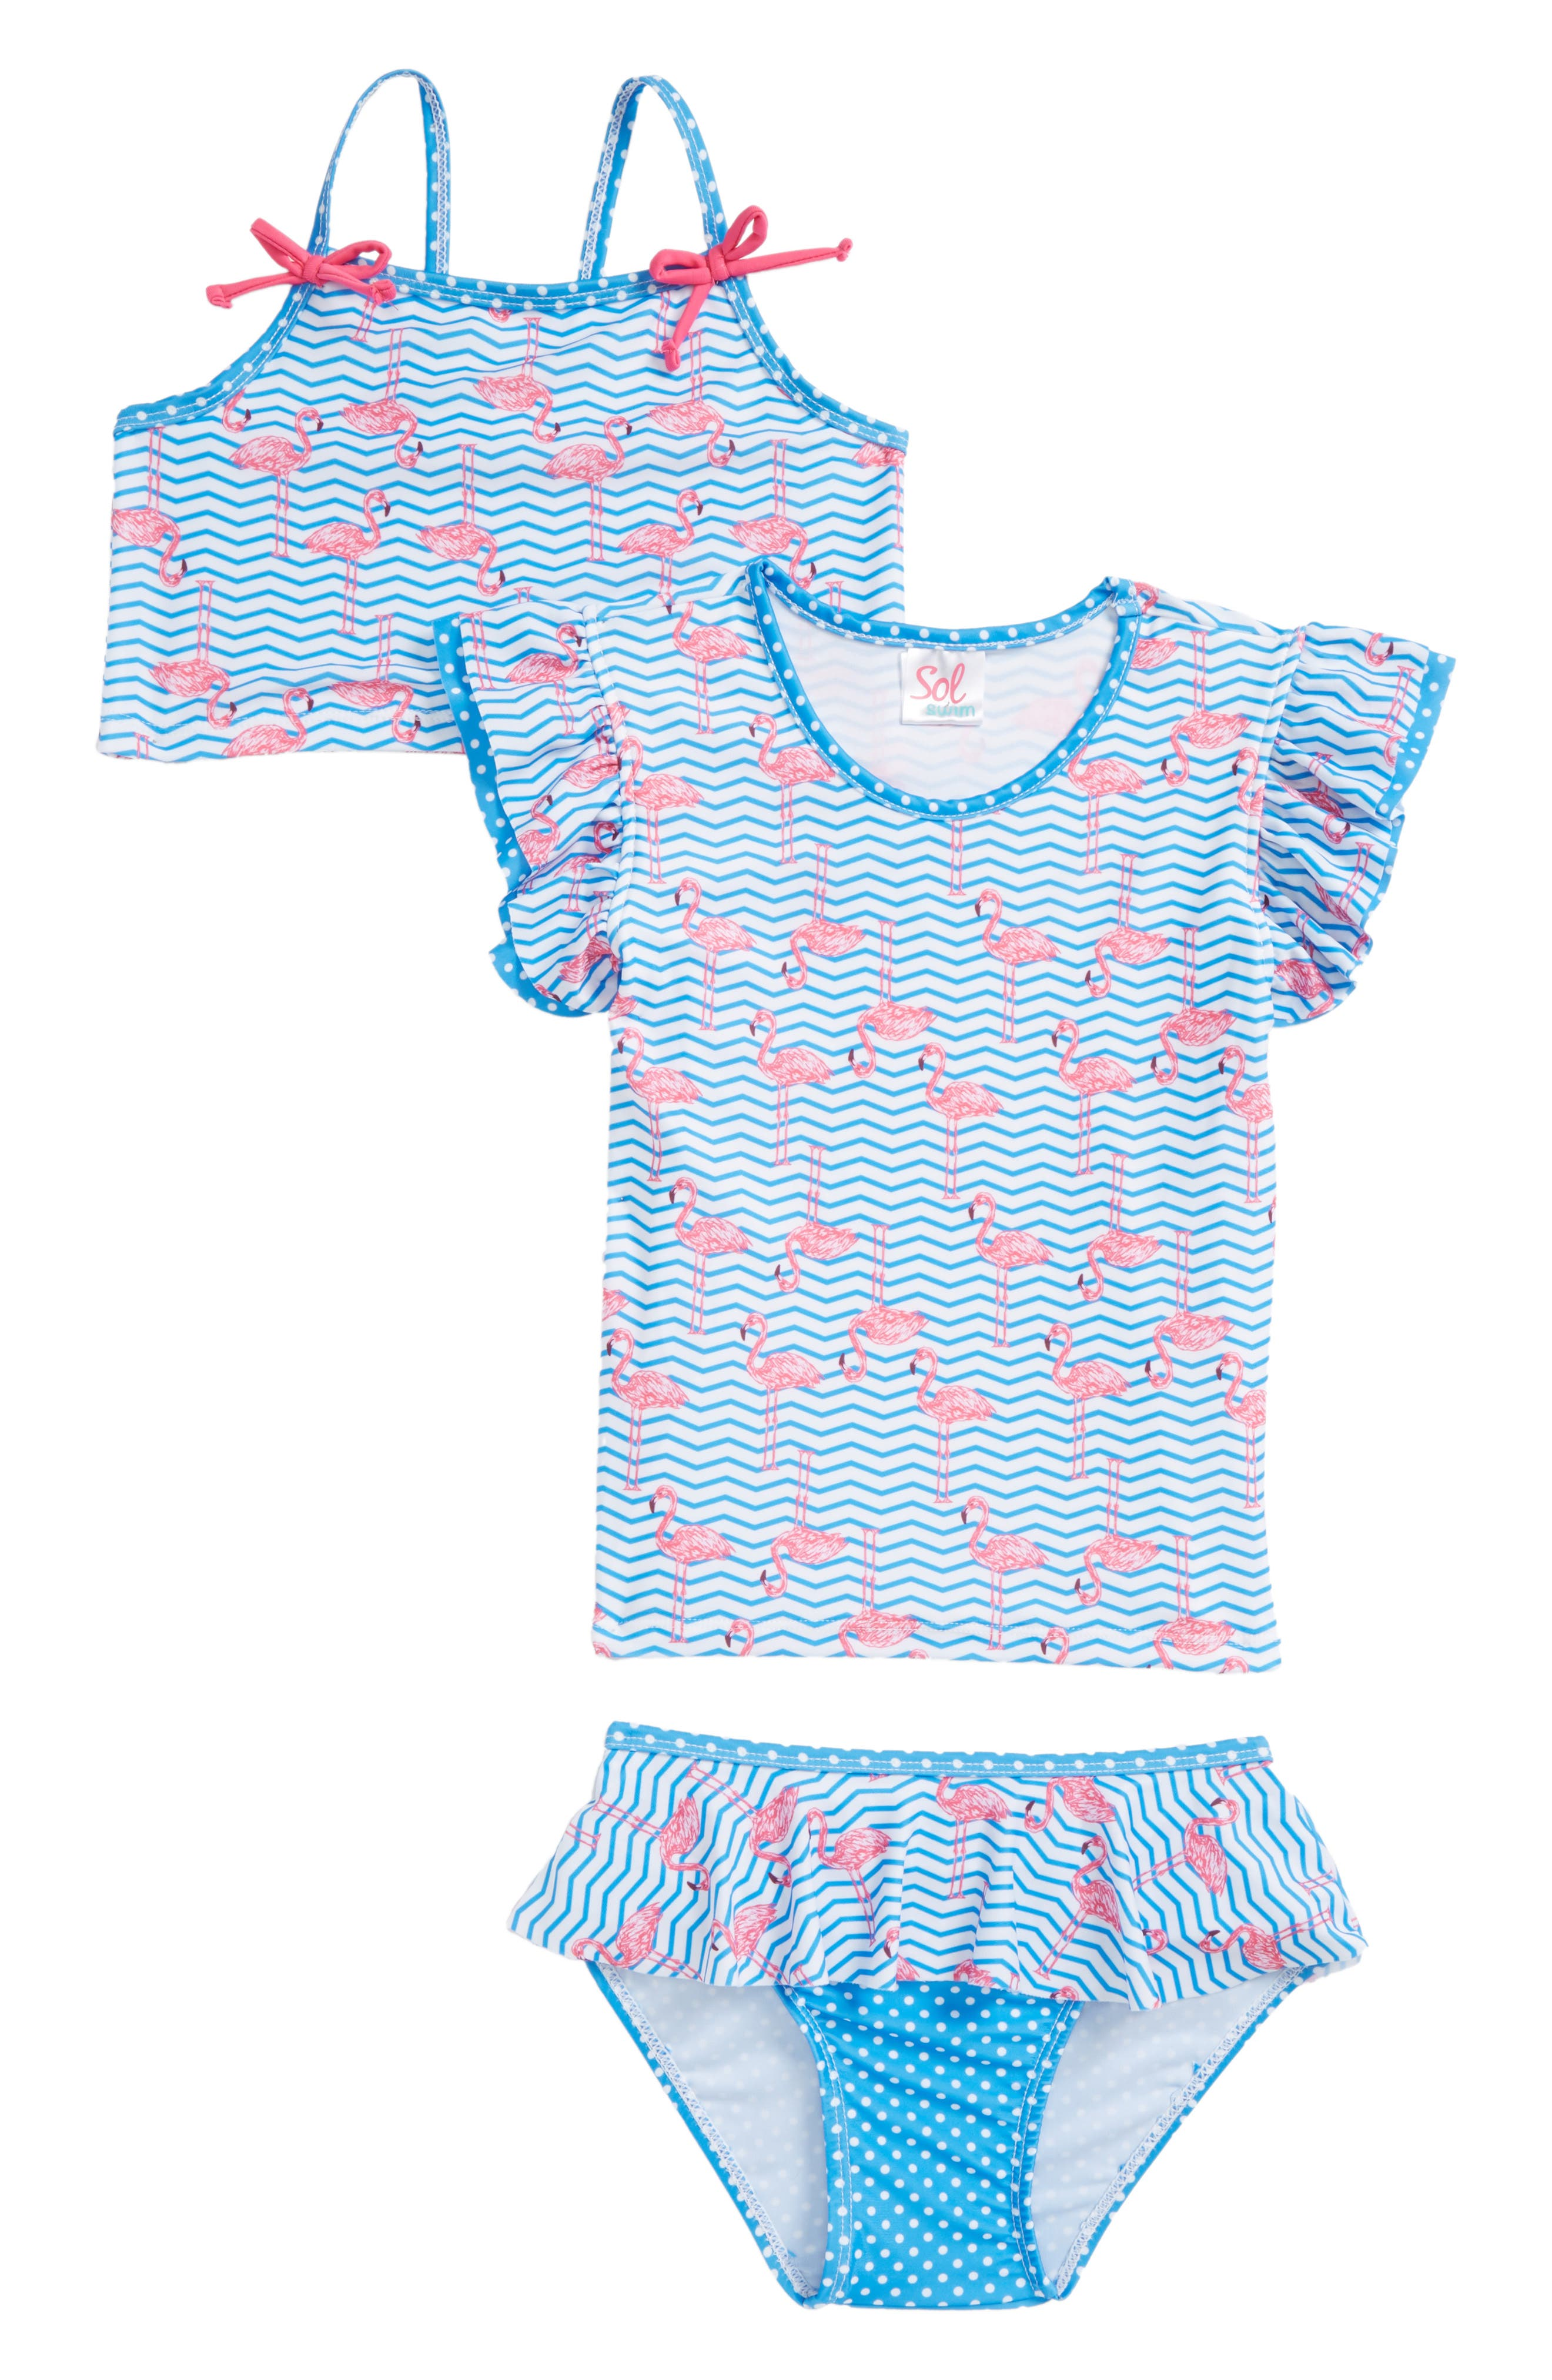 Zig Zag Flamingos Two-Piece Swimsuit with Rashguard,                             Main thumbnail 1, color,                             409